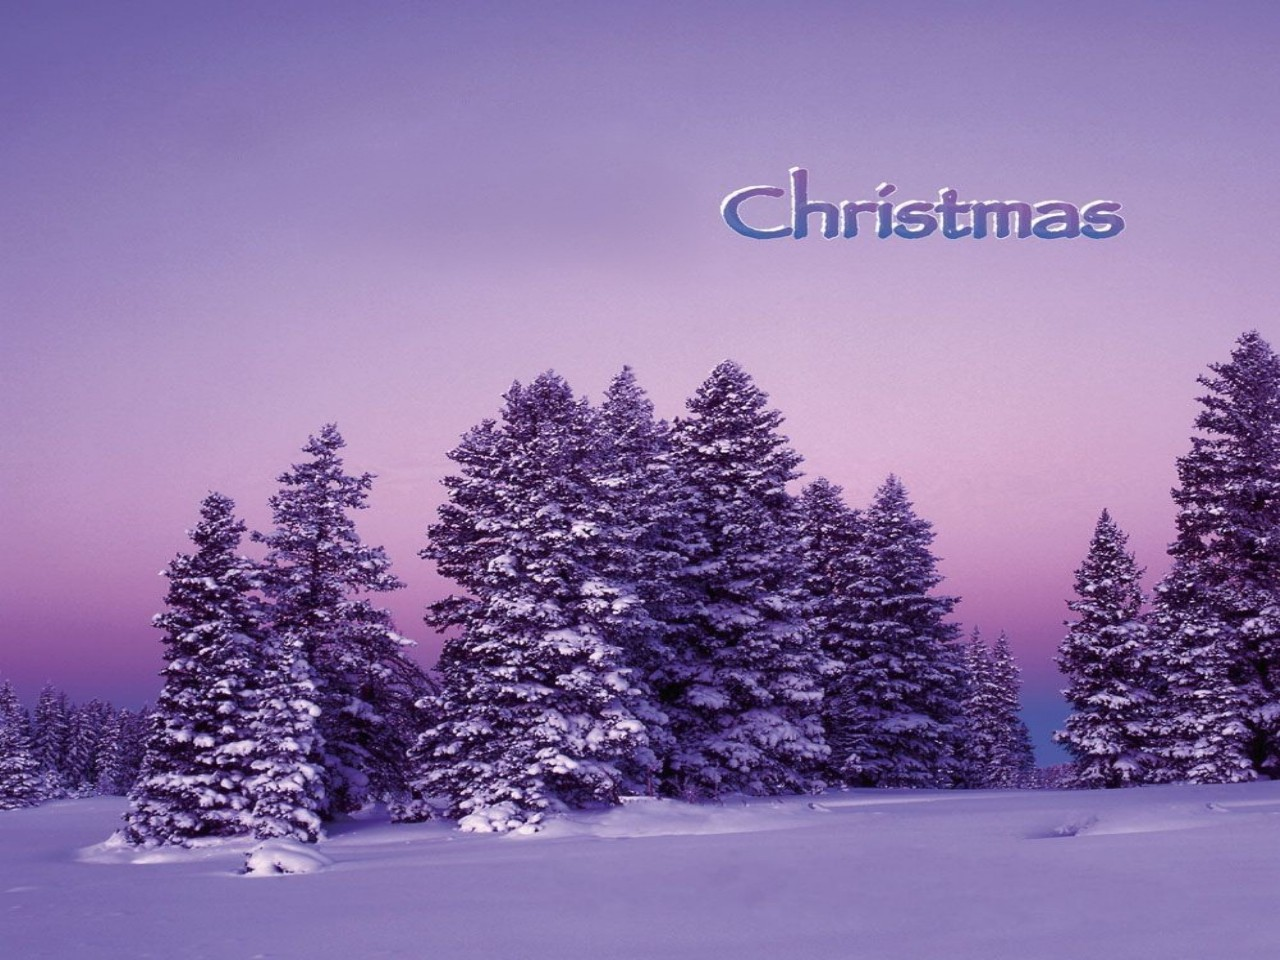 Merry-Christmas-Christmas-Wallpaper-Fanpop-wallpaper-wp4808748